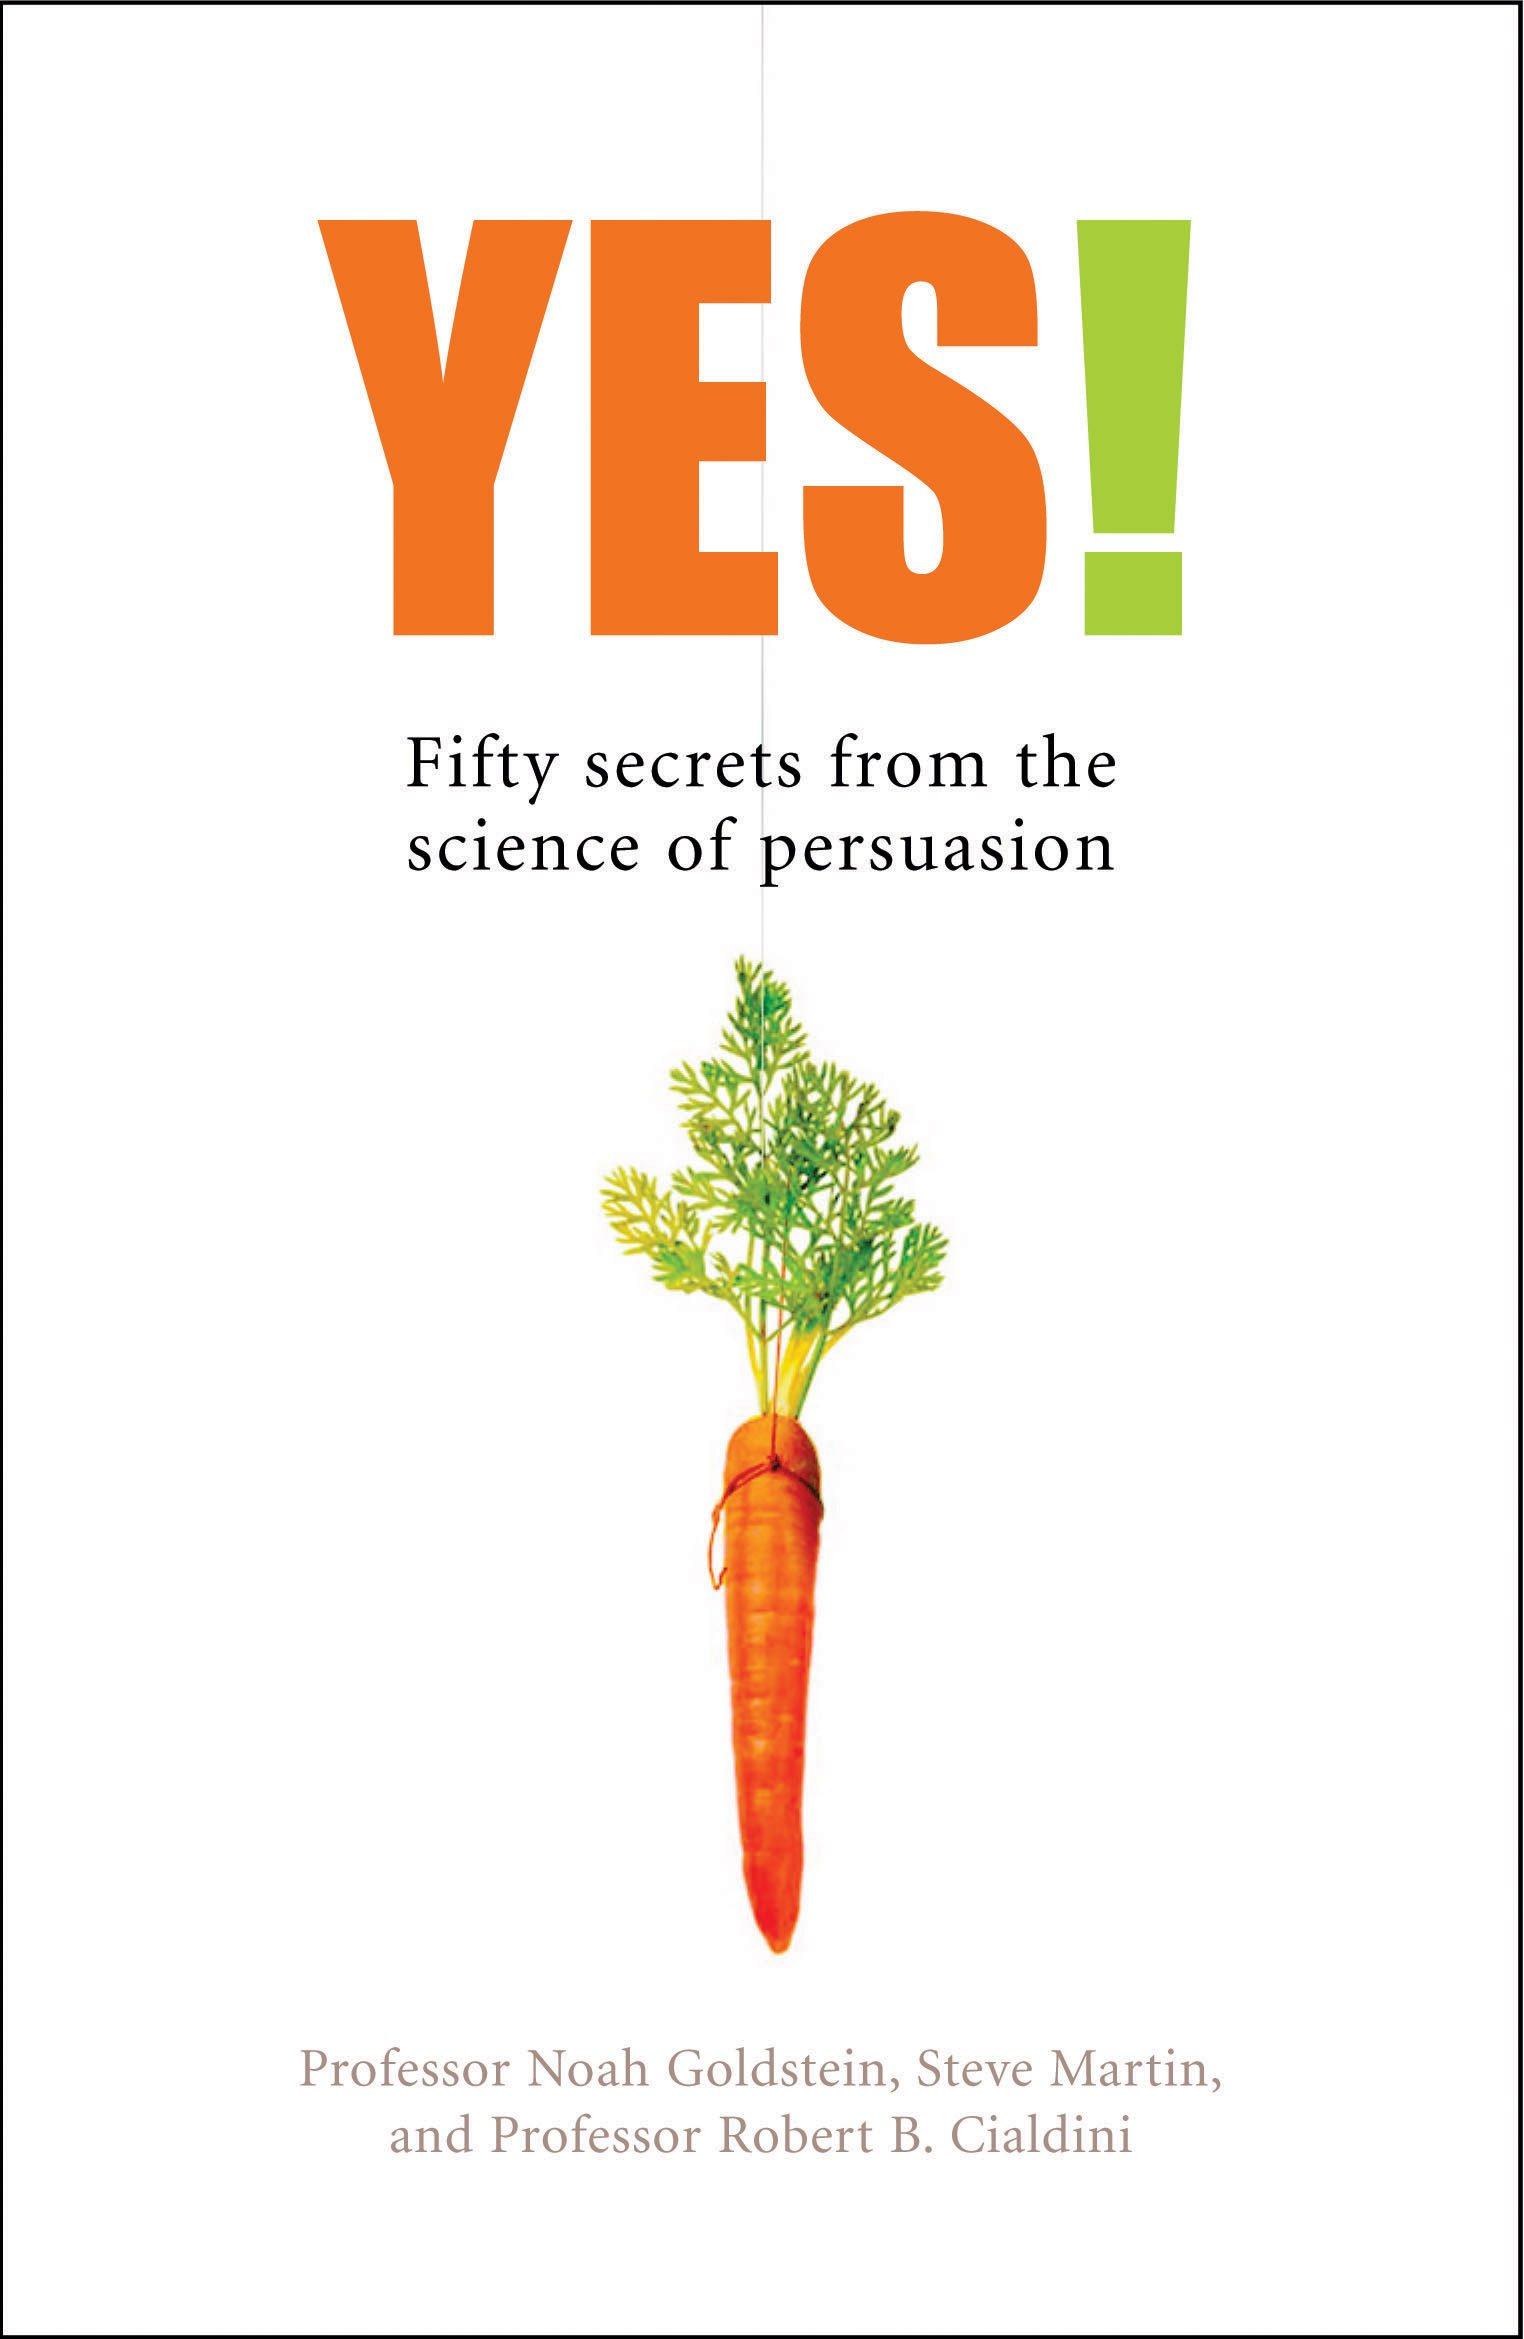 Yes 50 secrets from the science of persuasion amazon noah 50 secrets from the science of persuasion amazon noah j goldstein steve j martin robert b cialdini 9781846680168 books magicingreecefo Choice Image